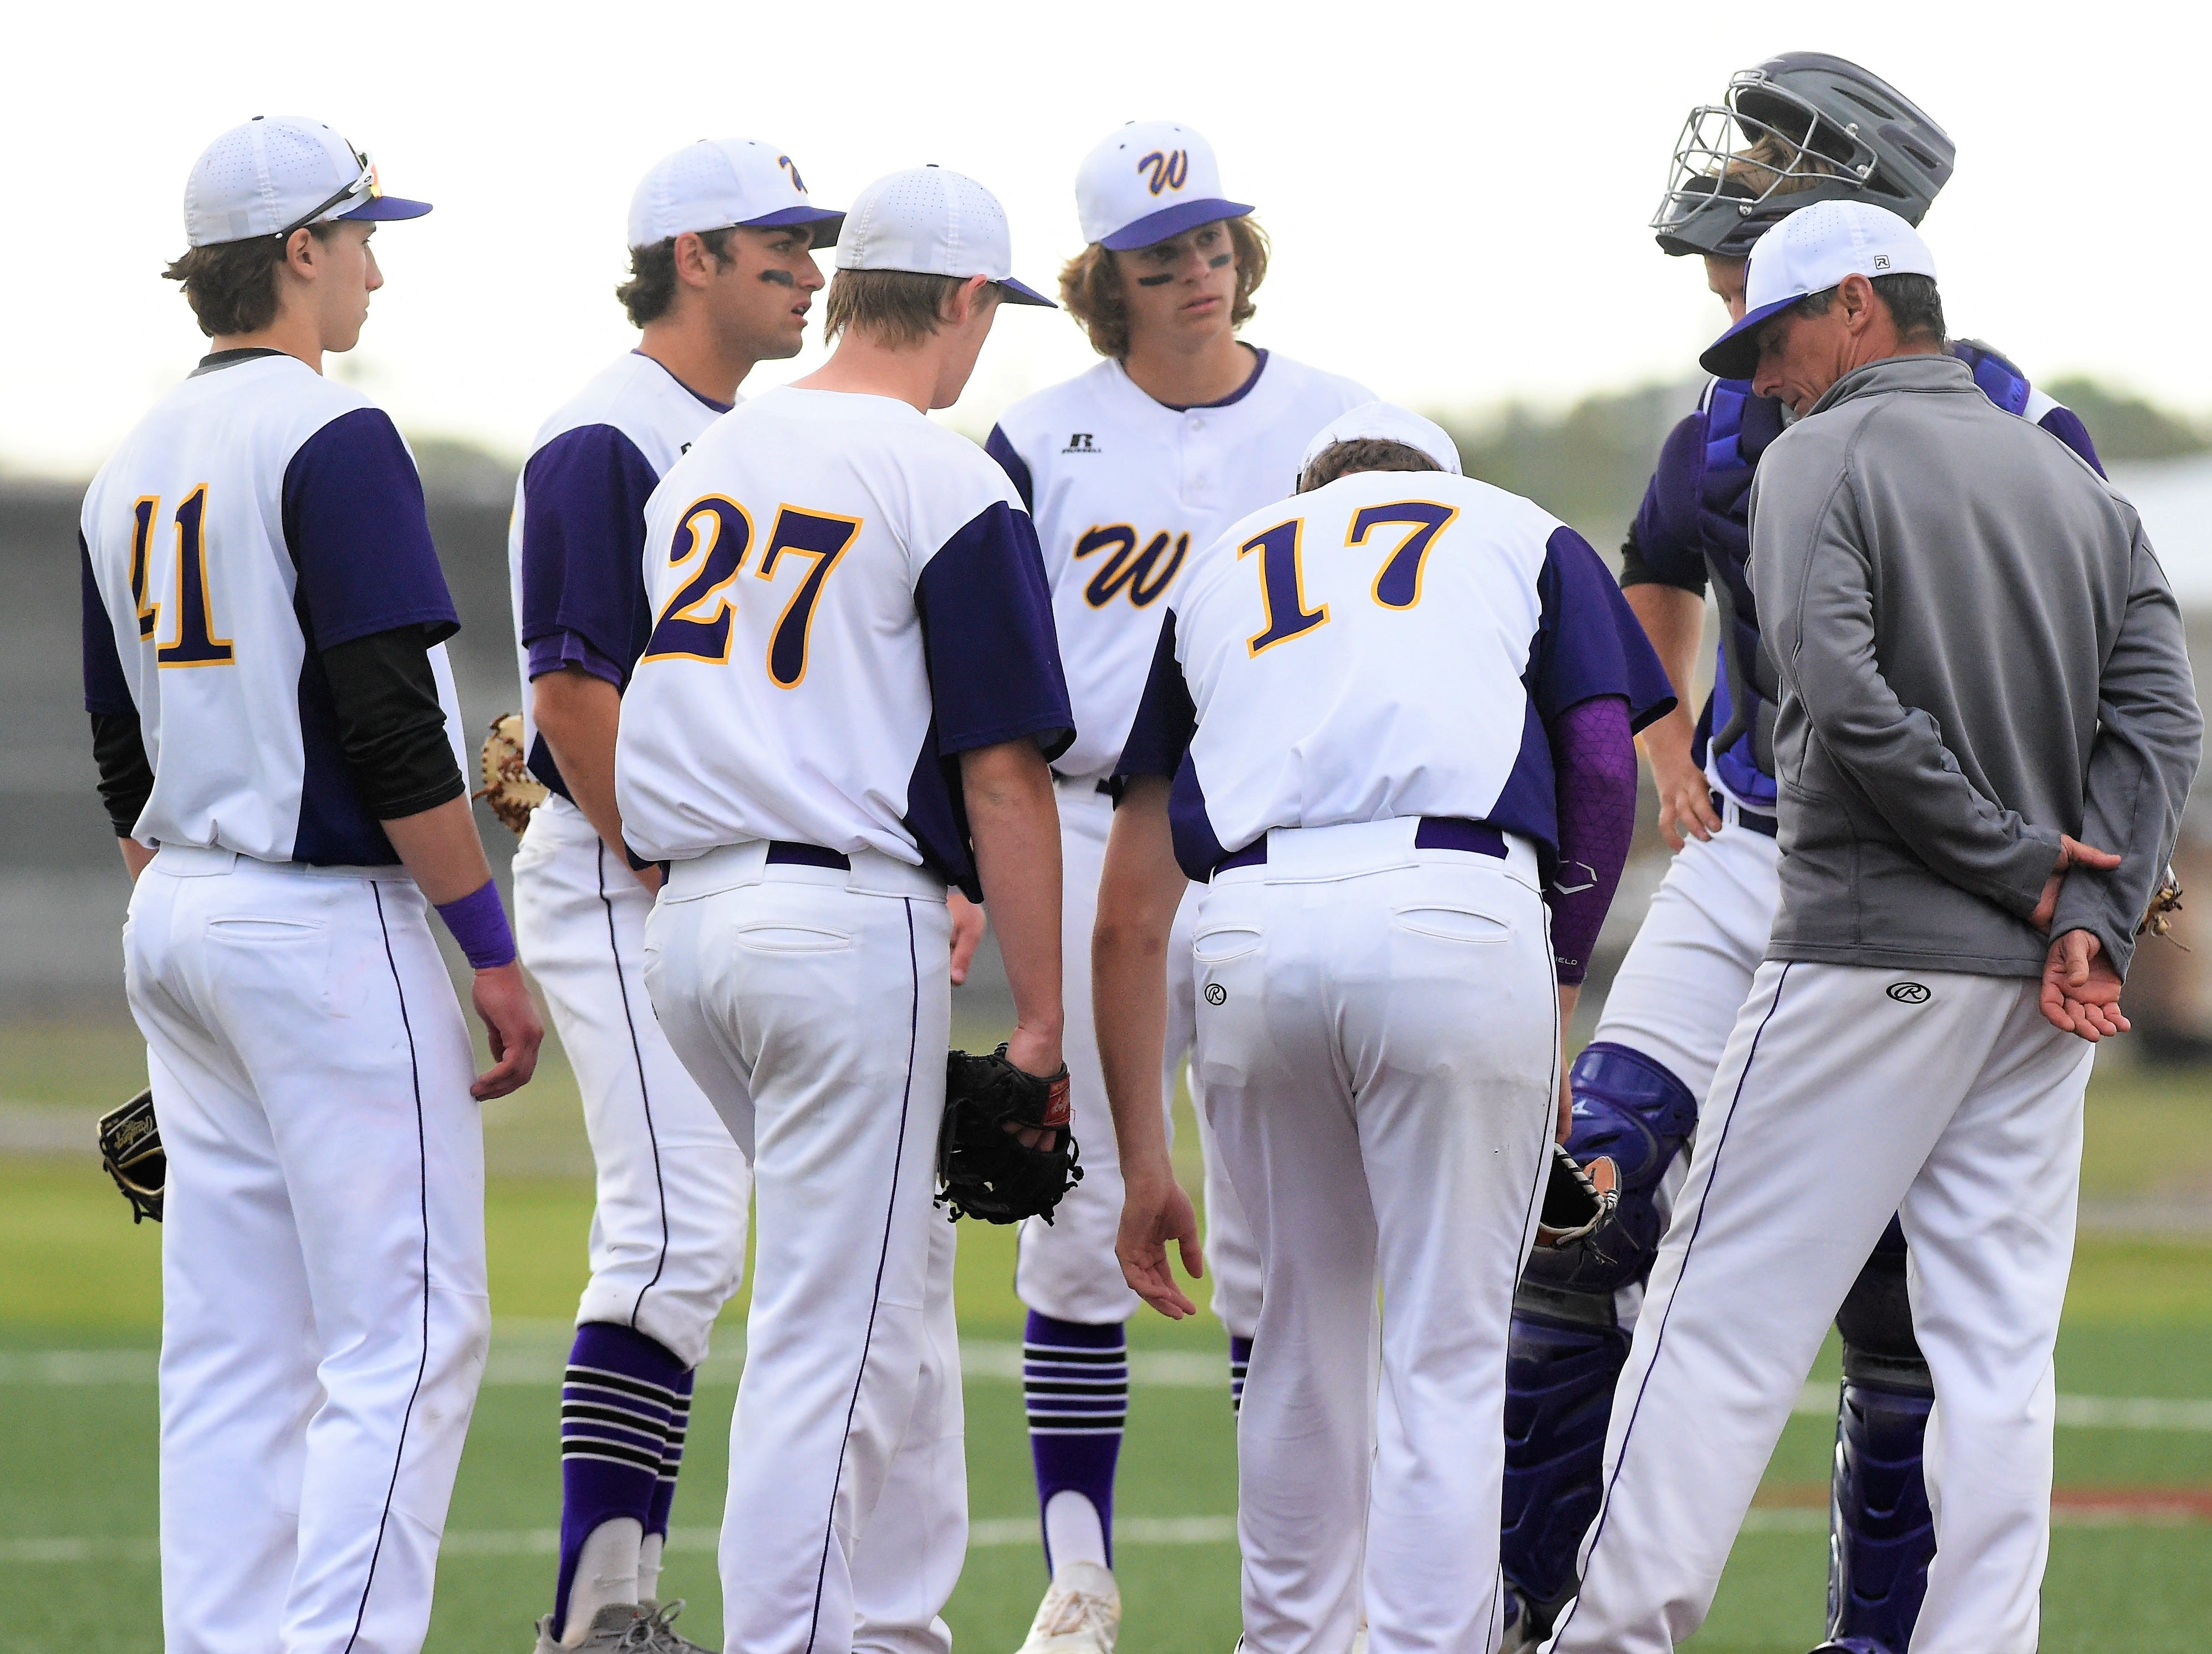 Wylie coach Clay Martin meets with his team on the mound during the seventh inning against Cooper at Bulldog Field on Friday, April 12, 2019. The Bulldogs held on for the 4-3 win.